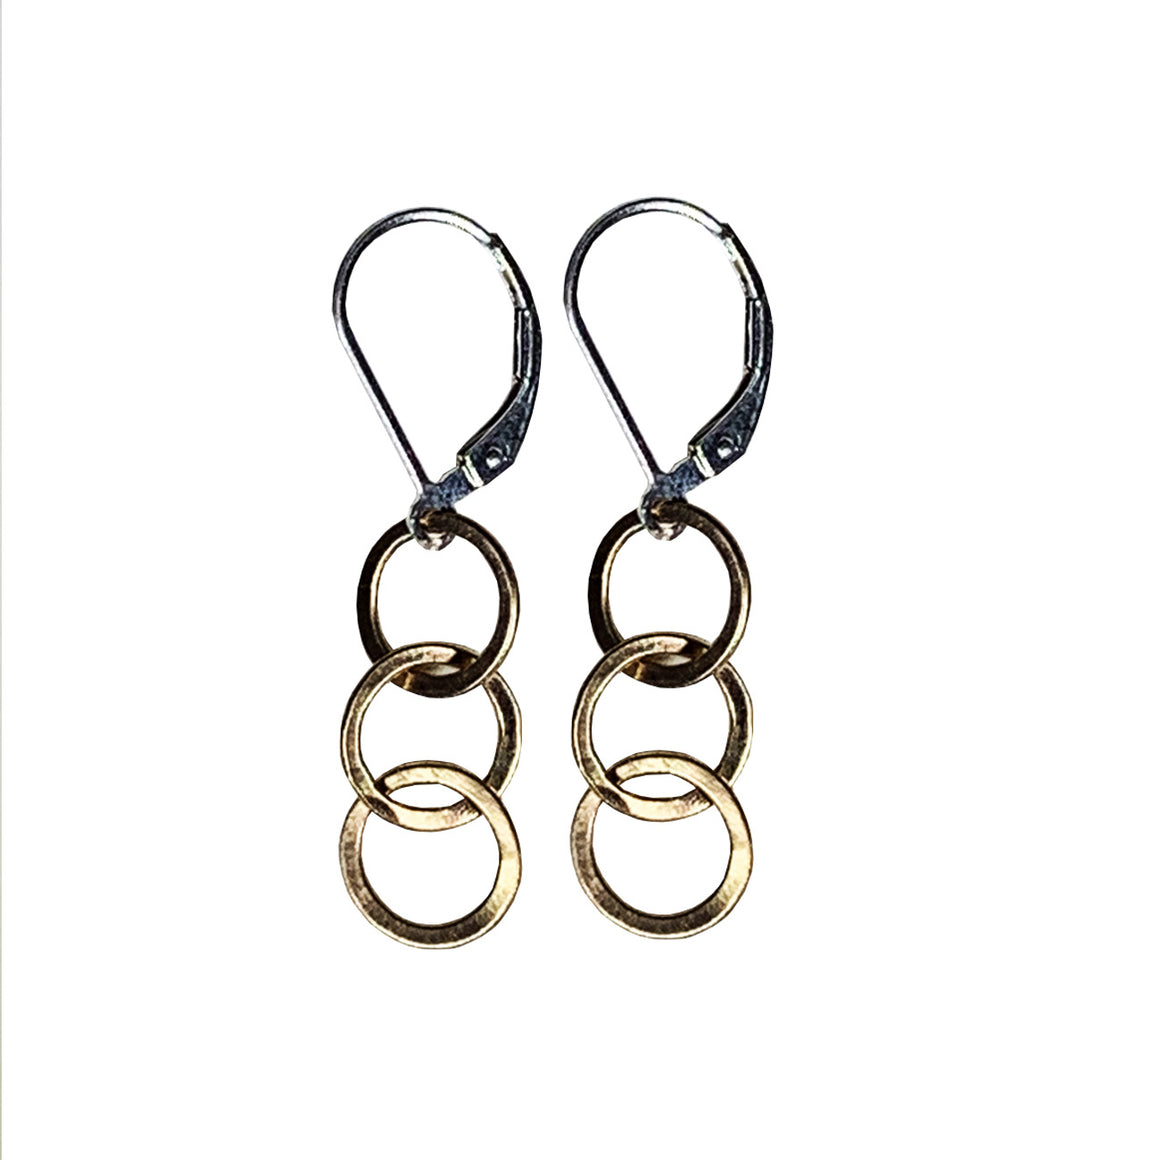 14kt Goldfill Interlocking Circle Drop Earrings